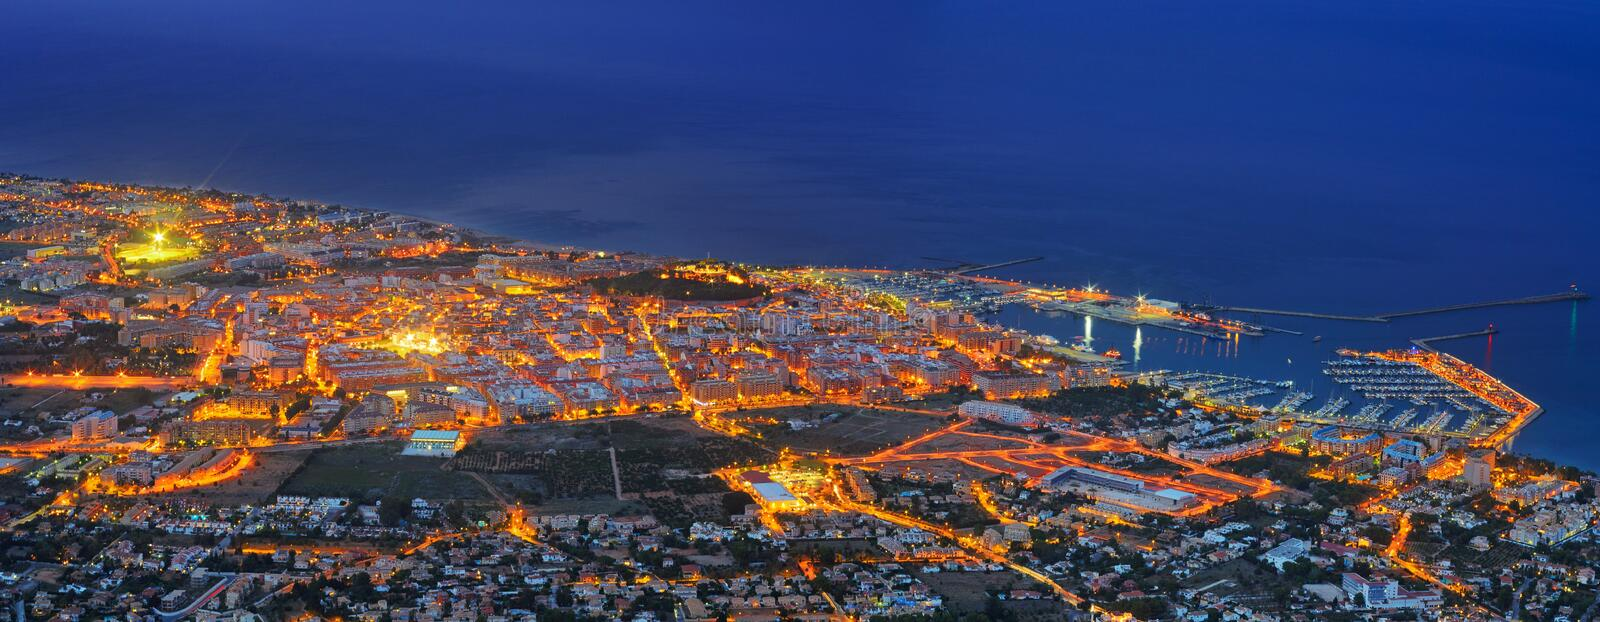 Denia port in night. View of seaside part of Denia and sea port in night. Spain royalty free stock photo